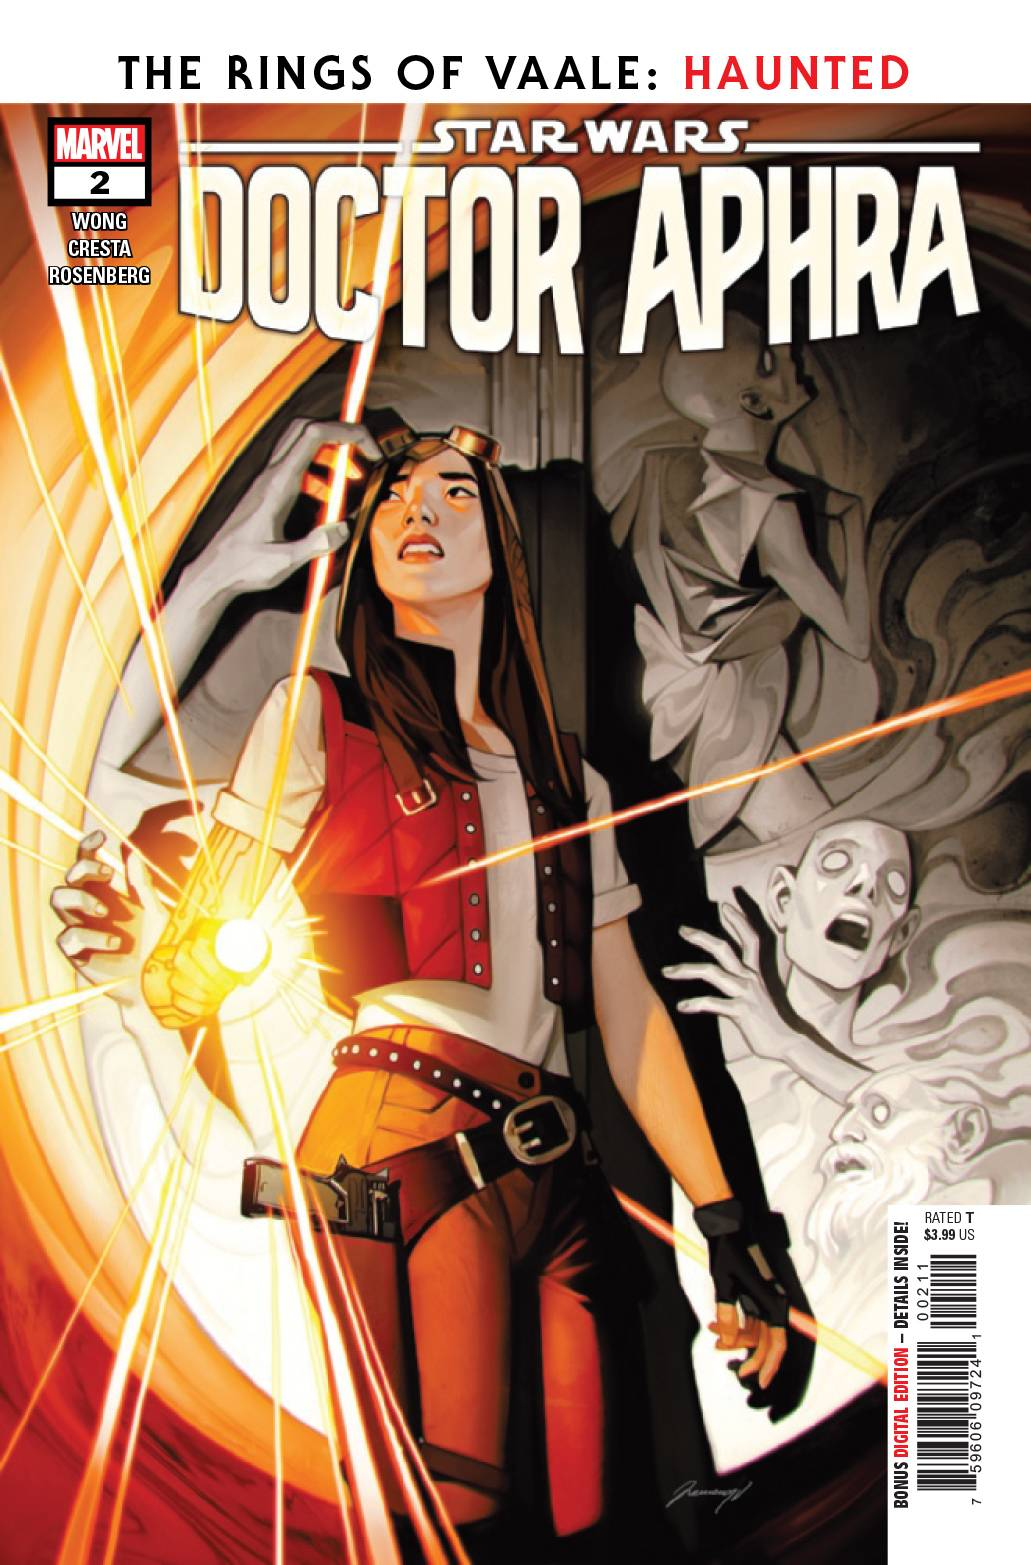 788115_star-wars-doctor-aphra-2 ComicList: Marvel Comics New Releases for 07/22/2020